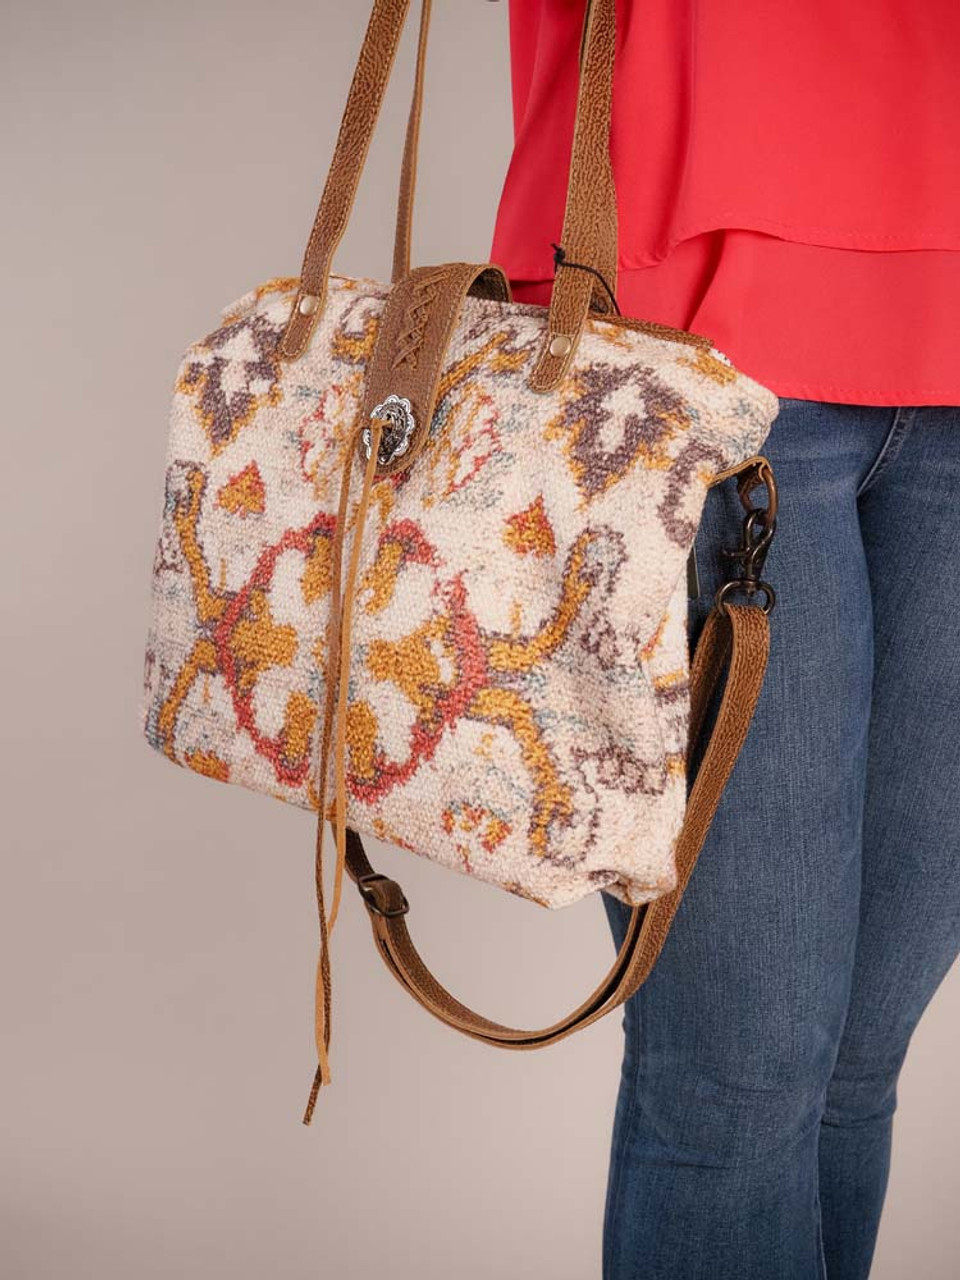 unique patterns in a way that is easy on the eye. It comes with a detachable crossbody strap and will make a standout addition to your collection. Zipper close at top, decorative leather magnet snap closure with silver tone metal button and leather string tie, zipper pocket on back; interior is fully lined and has one zipper pocket and two slip pockets.